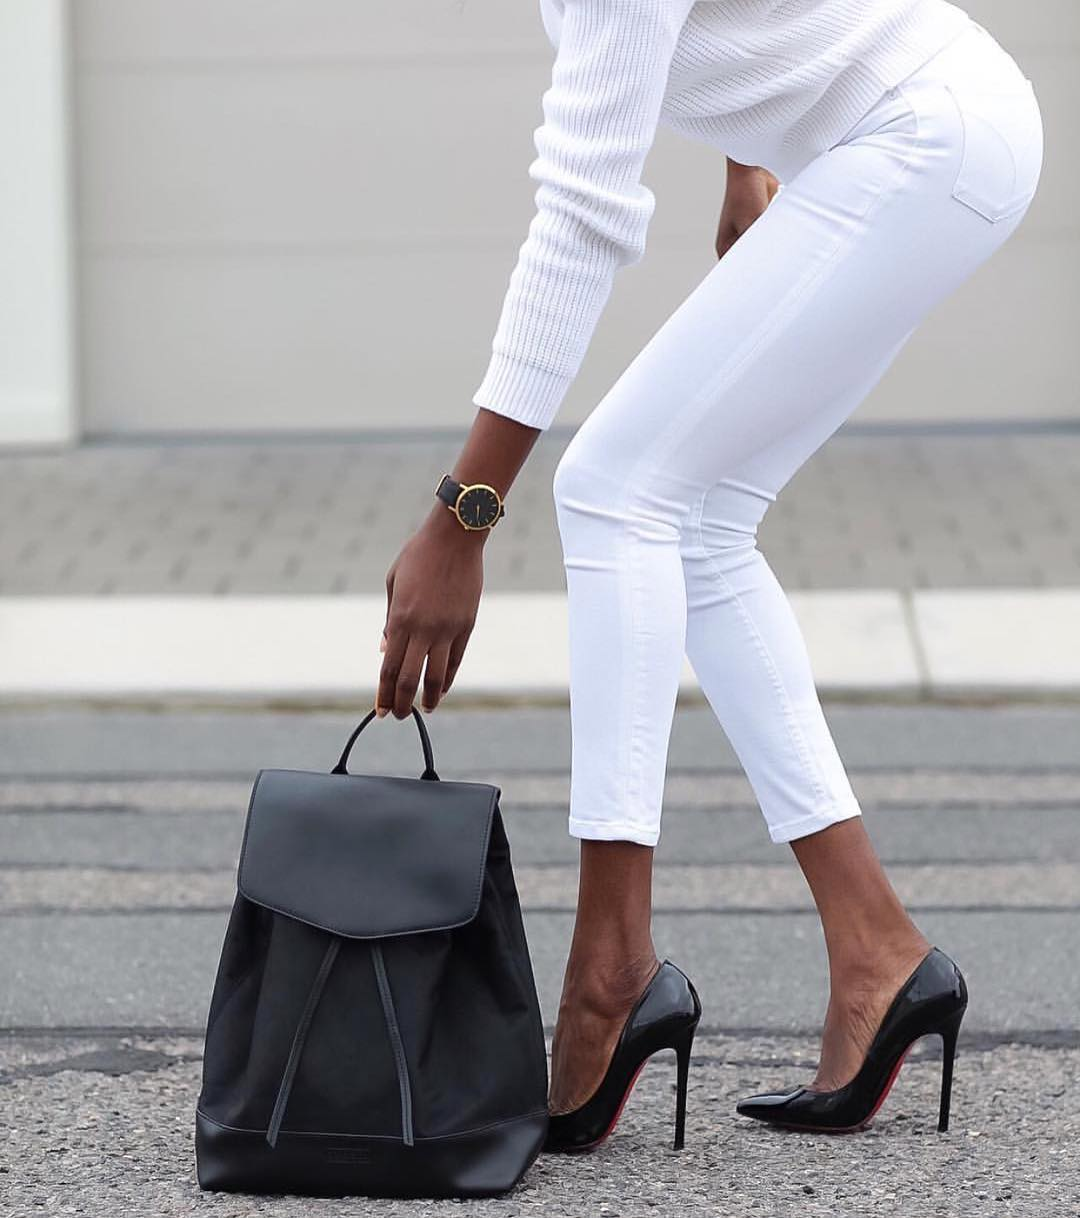 All White Outfit With Black Backpack And Black Heeled Pumps 2019